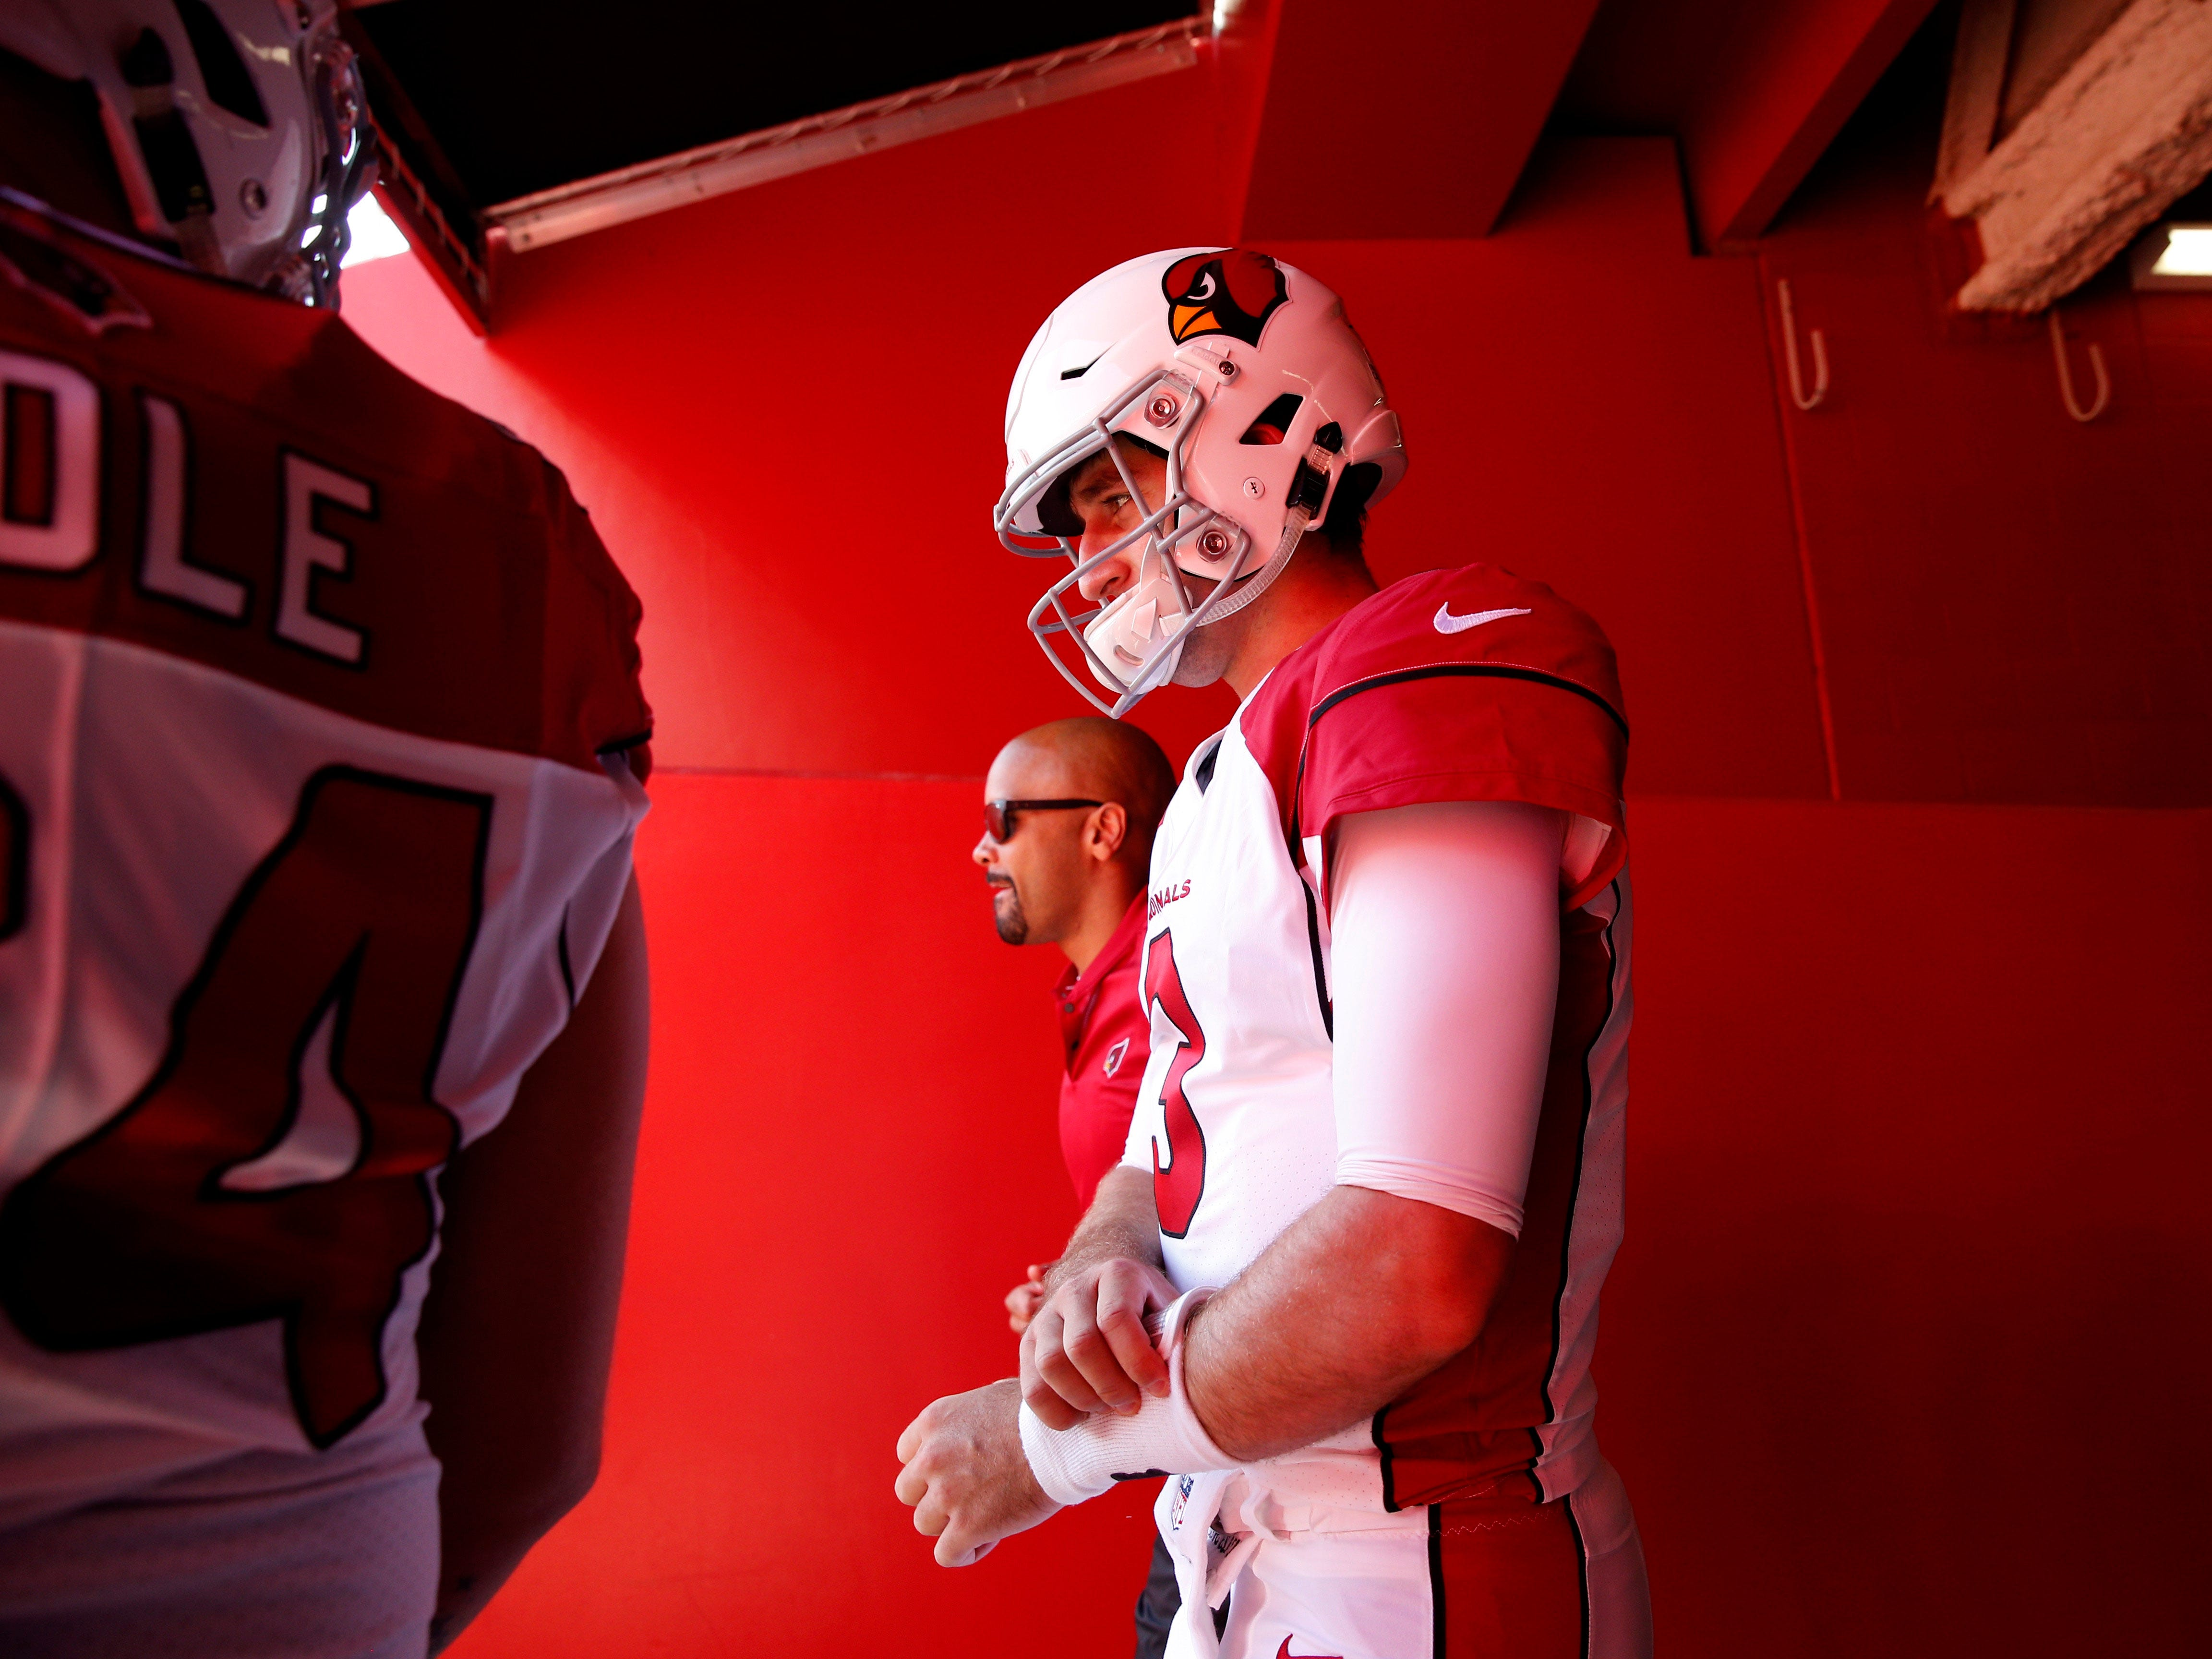 Oct 7, 2018; Santa Clara, CA, USA; Arizona Cardinals quarterback Josh Rosen (3) prepares to take the field before the start of the game against the San Francisco 49ers at Levi's Stadium.